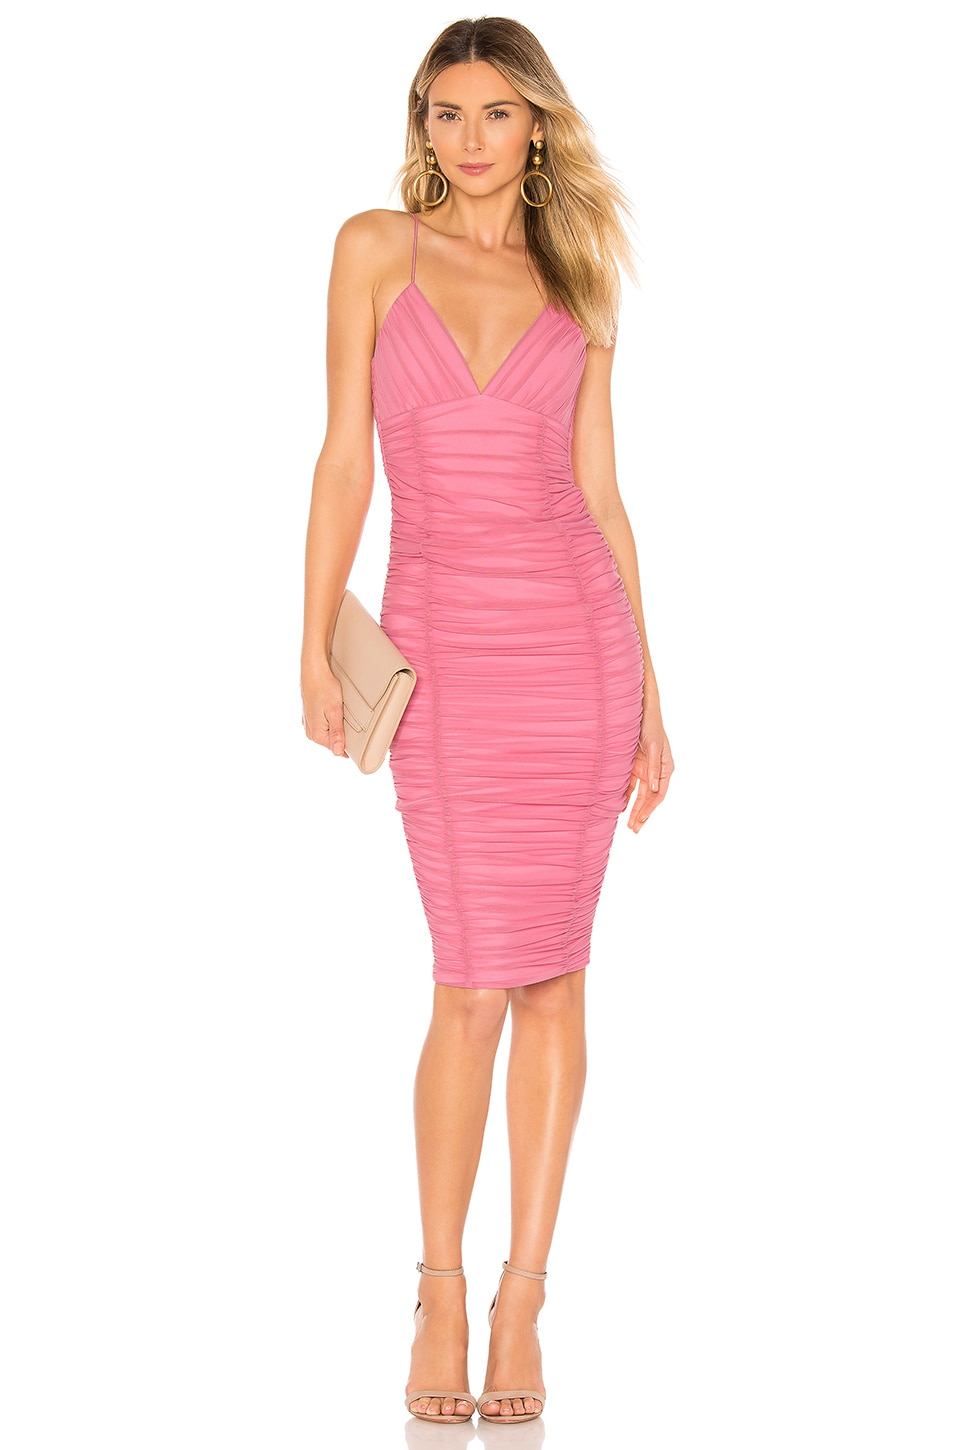 NOOKIE Ambition Midi Dress in Pink